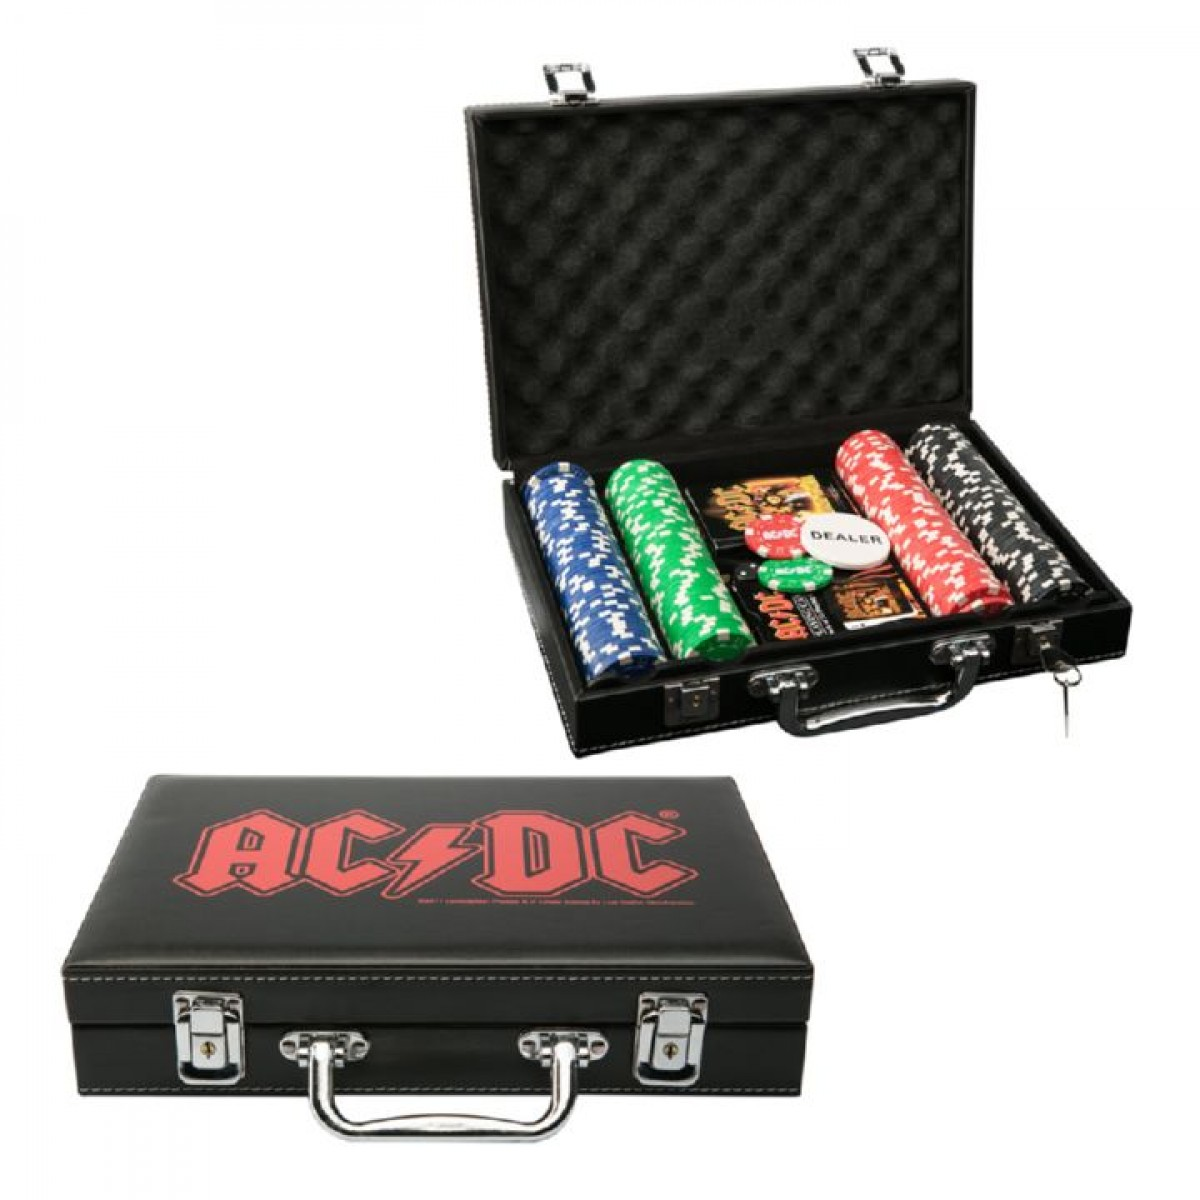 ACDC POKER CHIP SET IN CARRY CASE Man Zone Gift Ideas